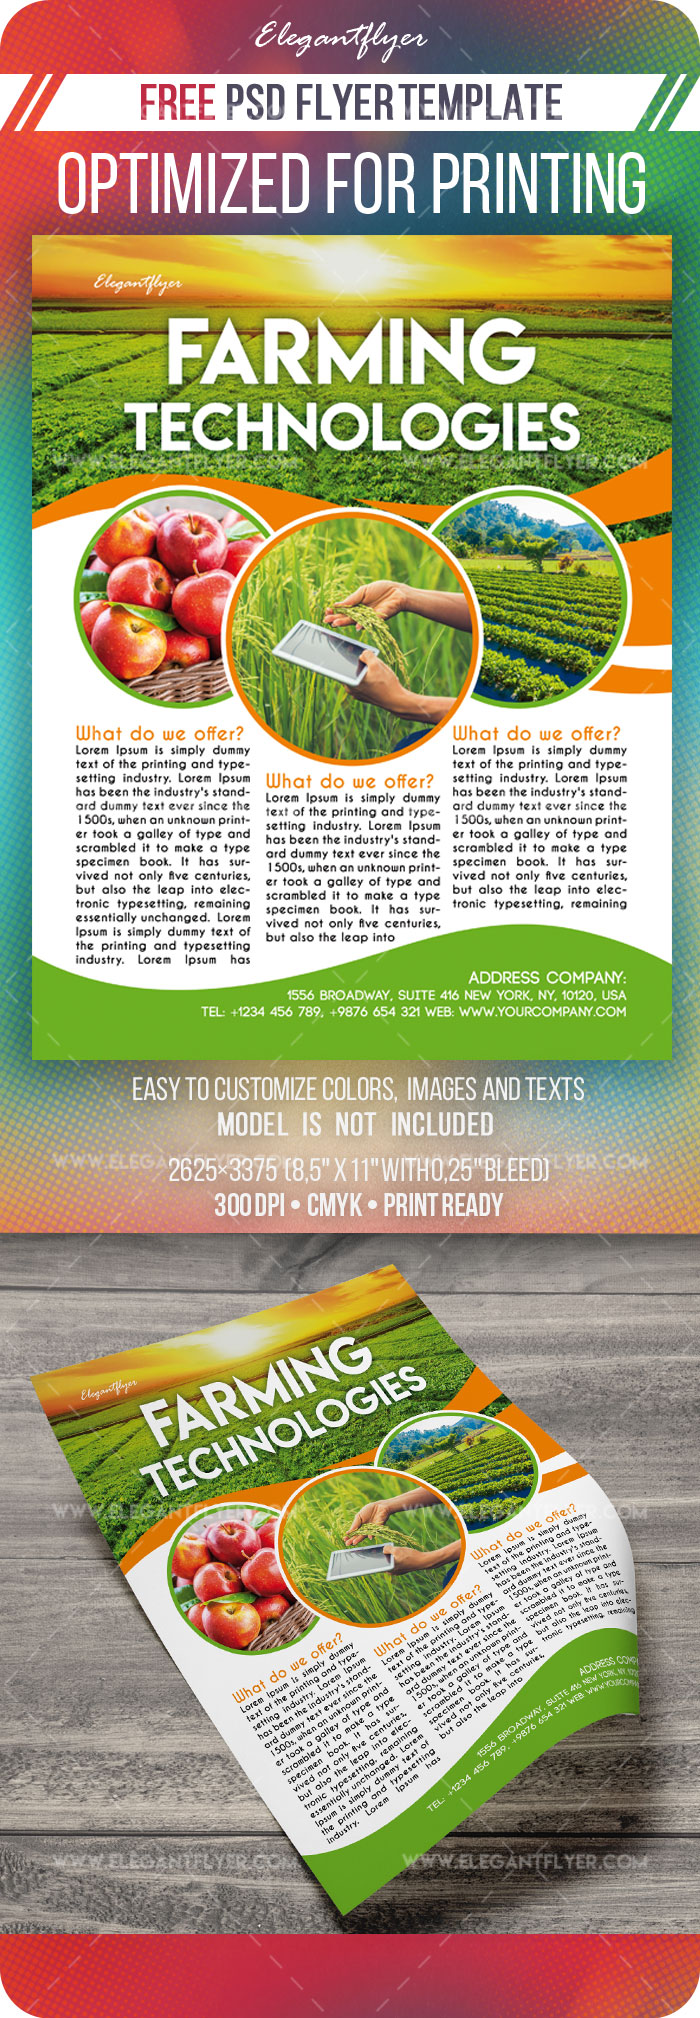 Farming Technologies – Free Flyer Template in PSD